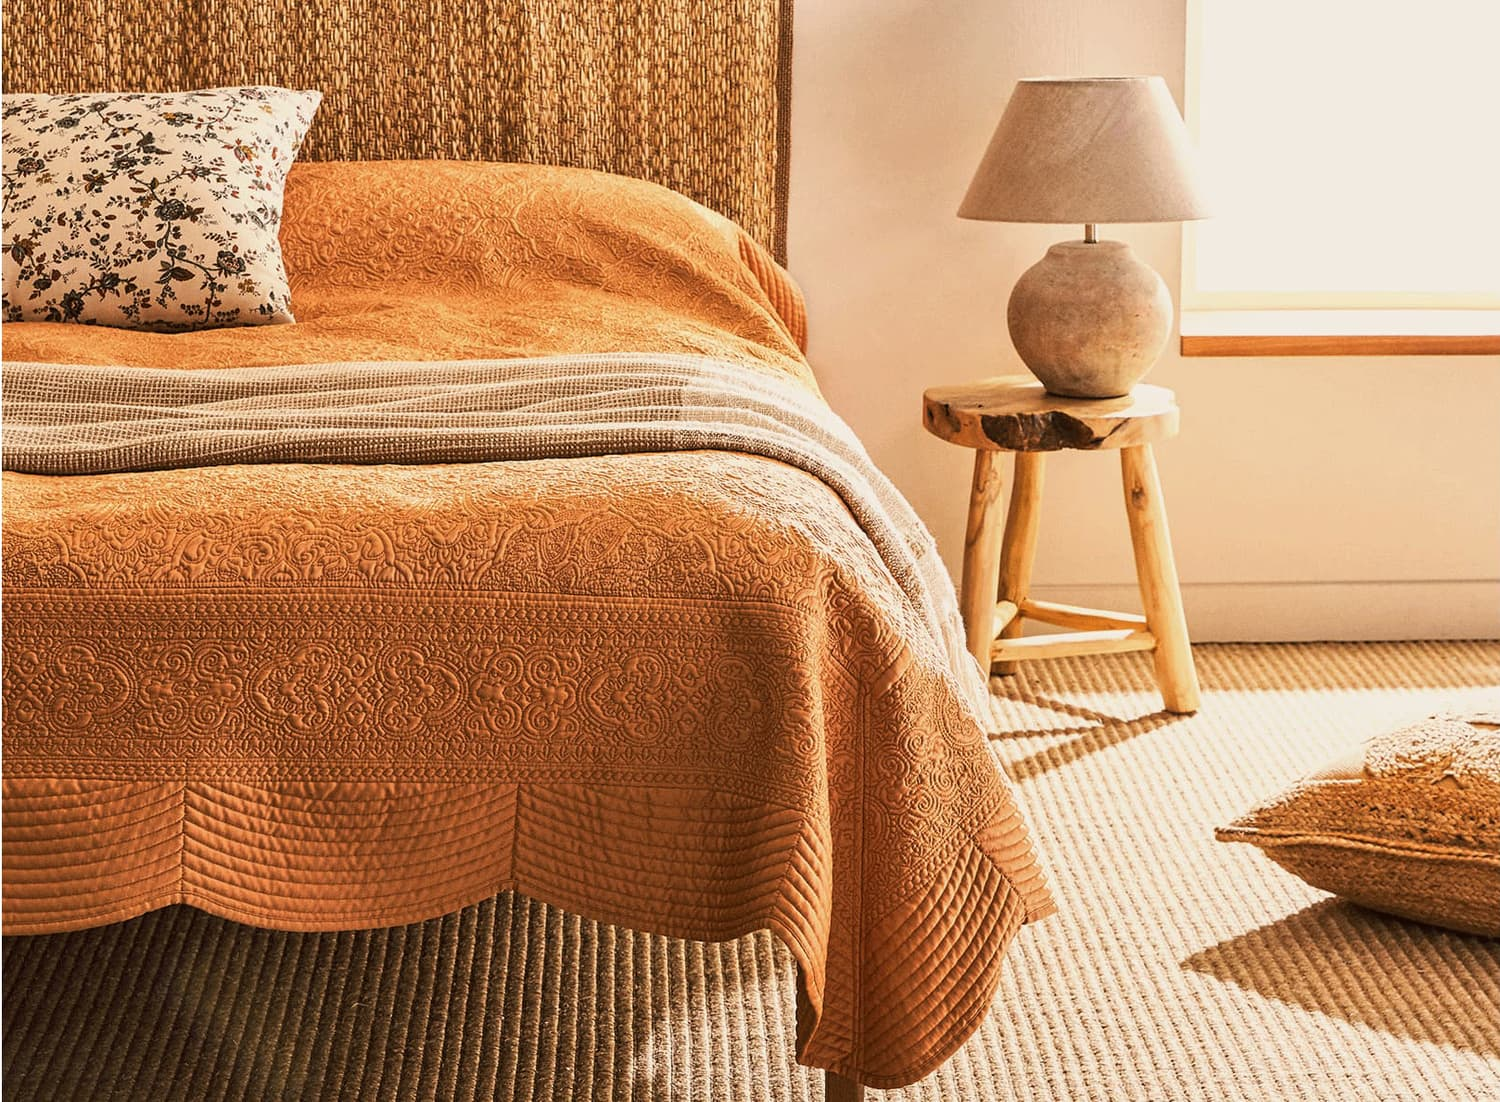 Zara Home's New Spring Bedding Collection is Full of Cozy Cottage Vibes